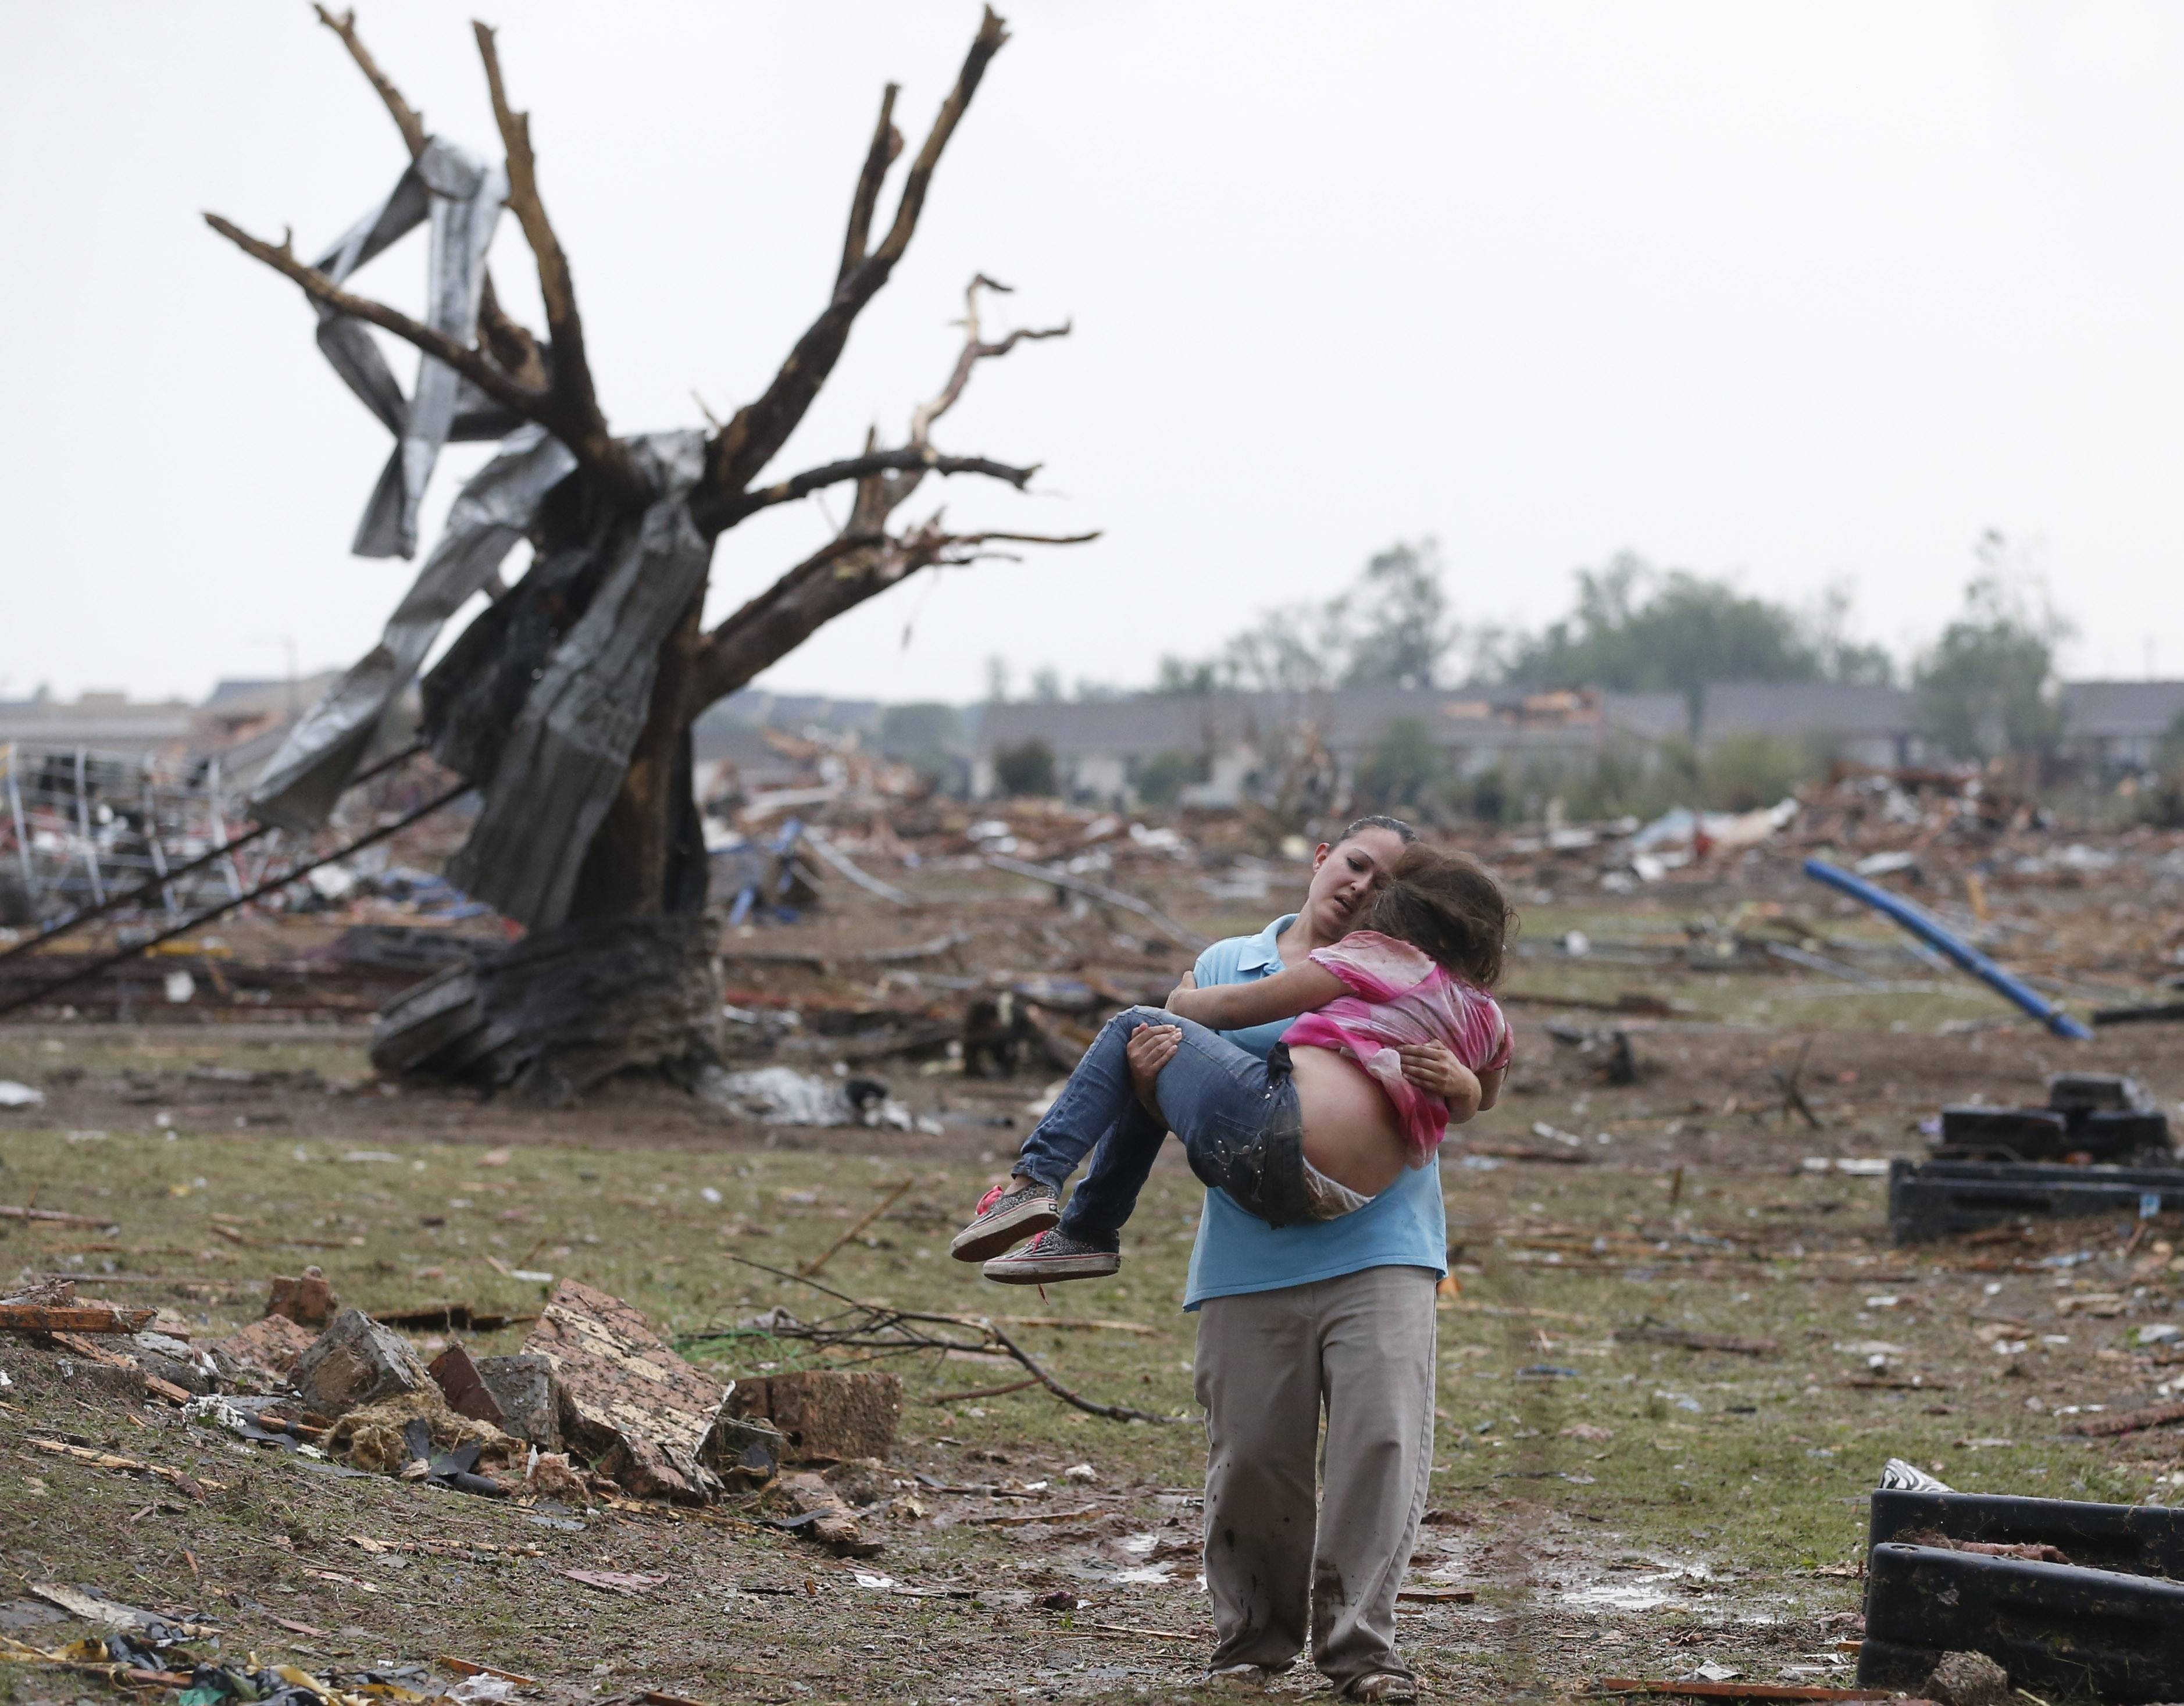 In this May 20, 2013 file photo, LaTisha Garcia carries her daughter, Jazmin Rodriguez, through a field near the collapsed Plaza Towers Elementary School in Moore, Okla. Jazmin was a third grade student at Plaza Towers Elementary school, where the tornado destroyed the school, trapping third grade students under rubble. Seven students died.